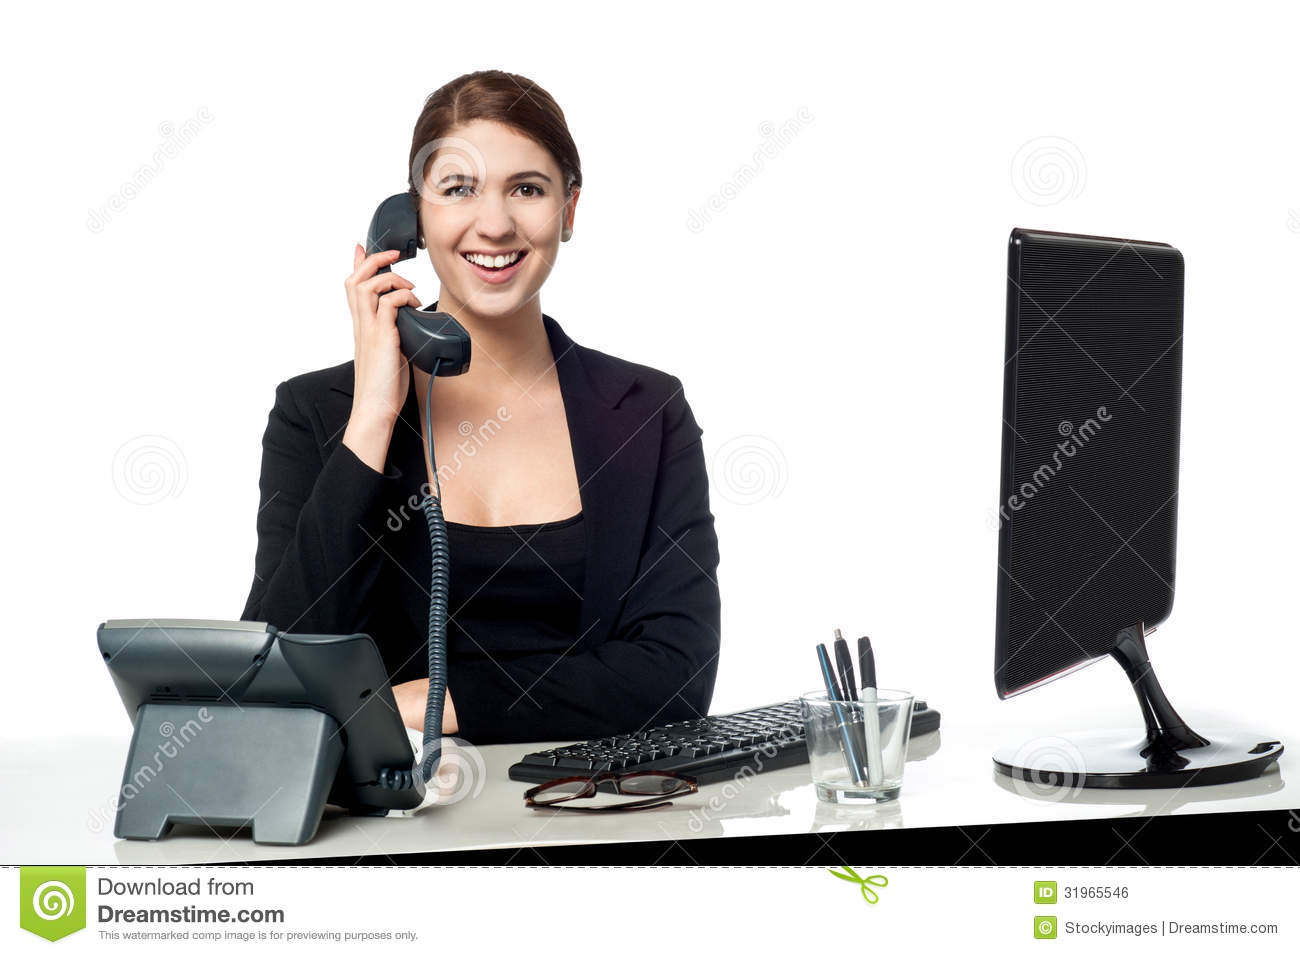 Female Secretary Answering Phone Call Royalty Free Stock